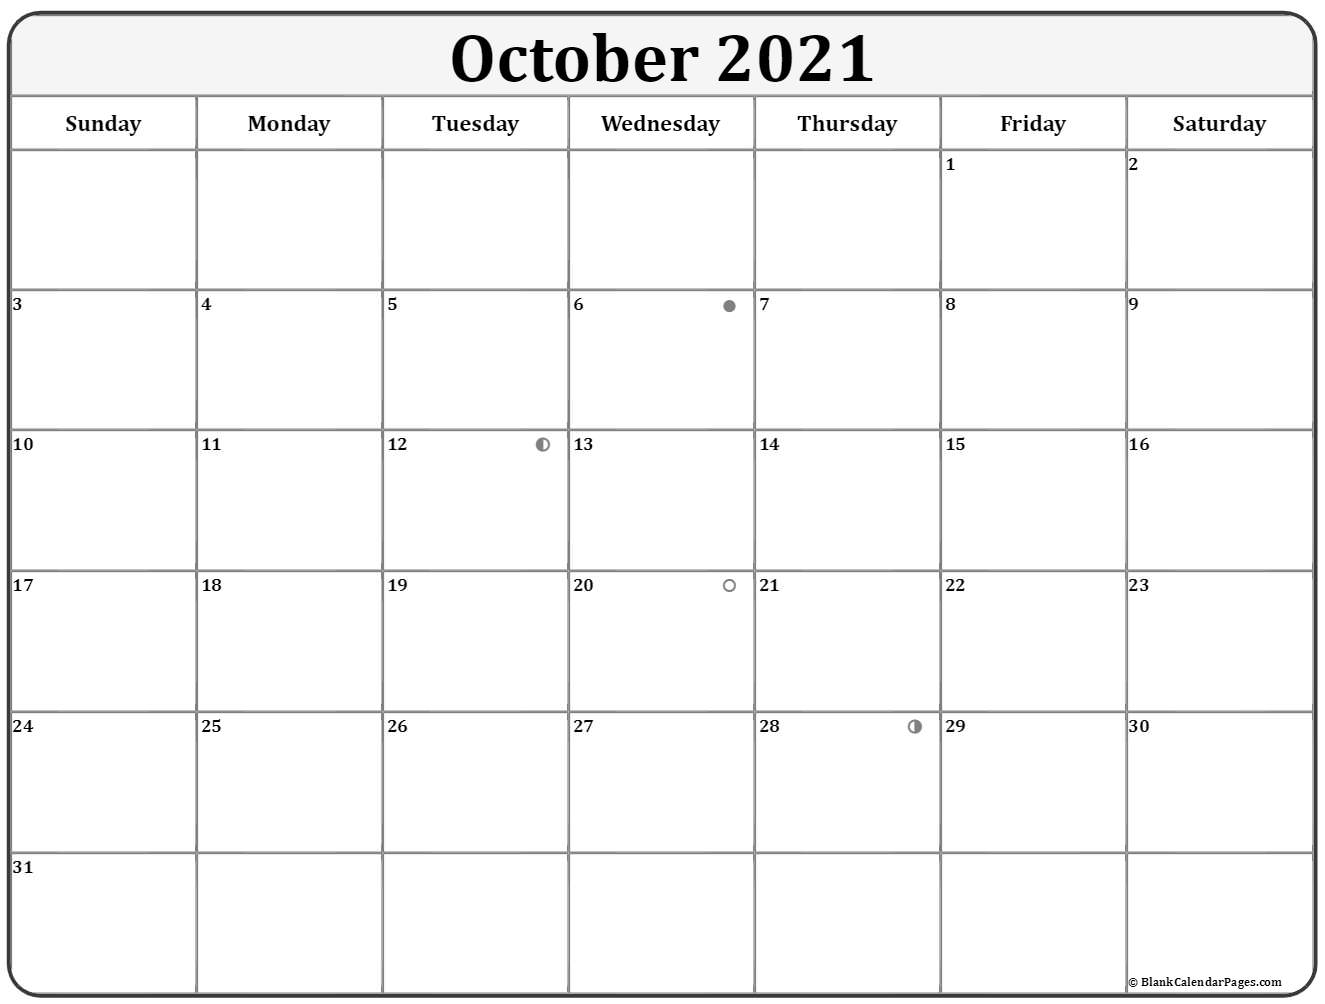 October 2019 Lunar Calendar Moon Phase Calendar